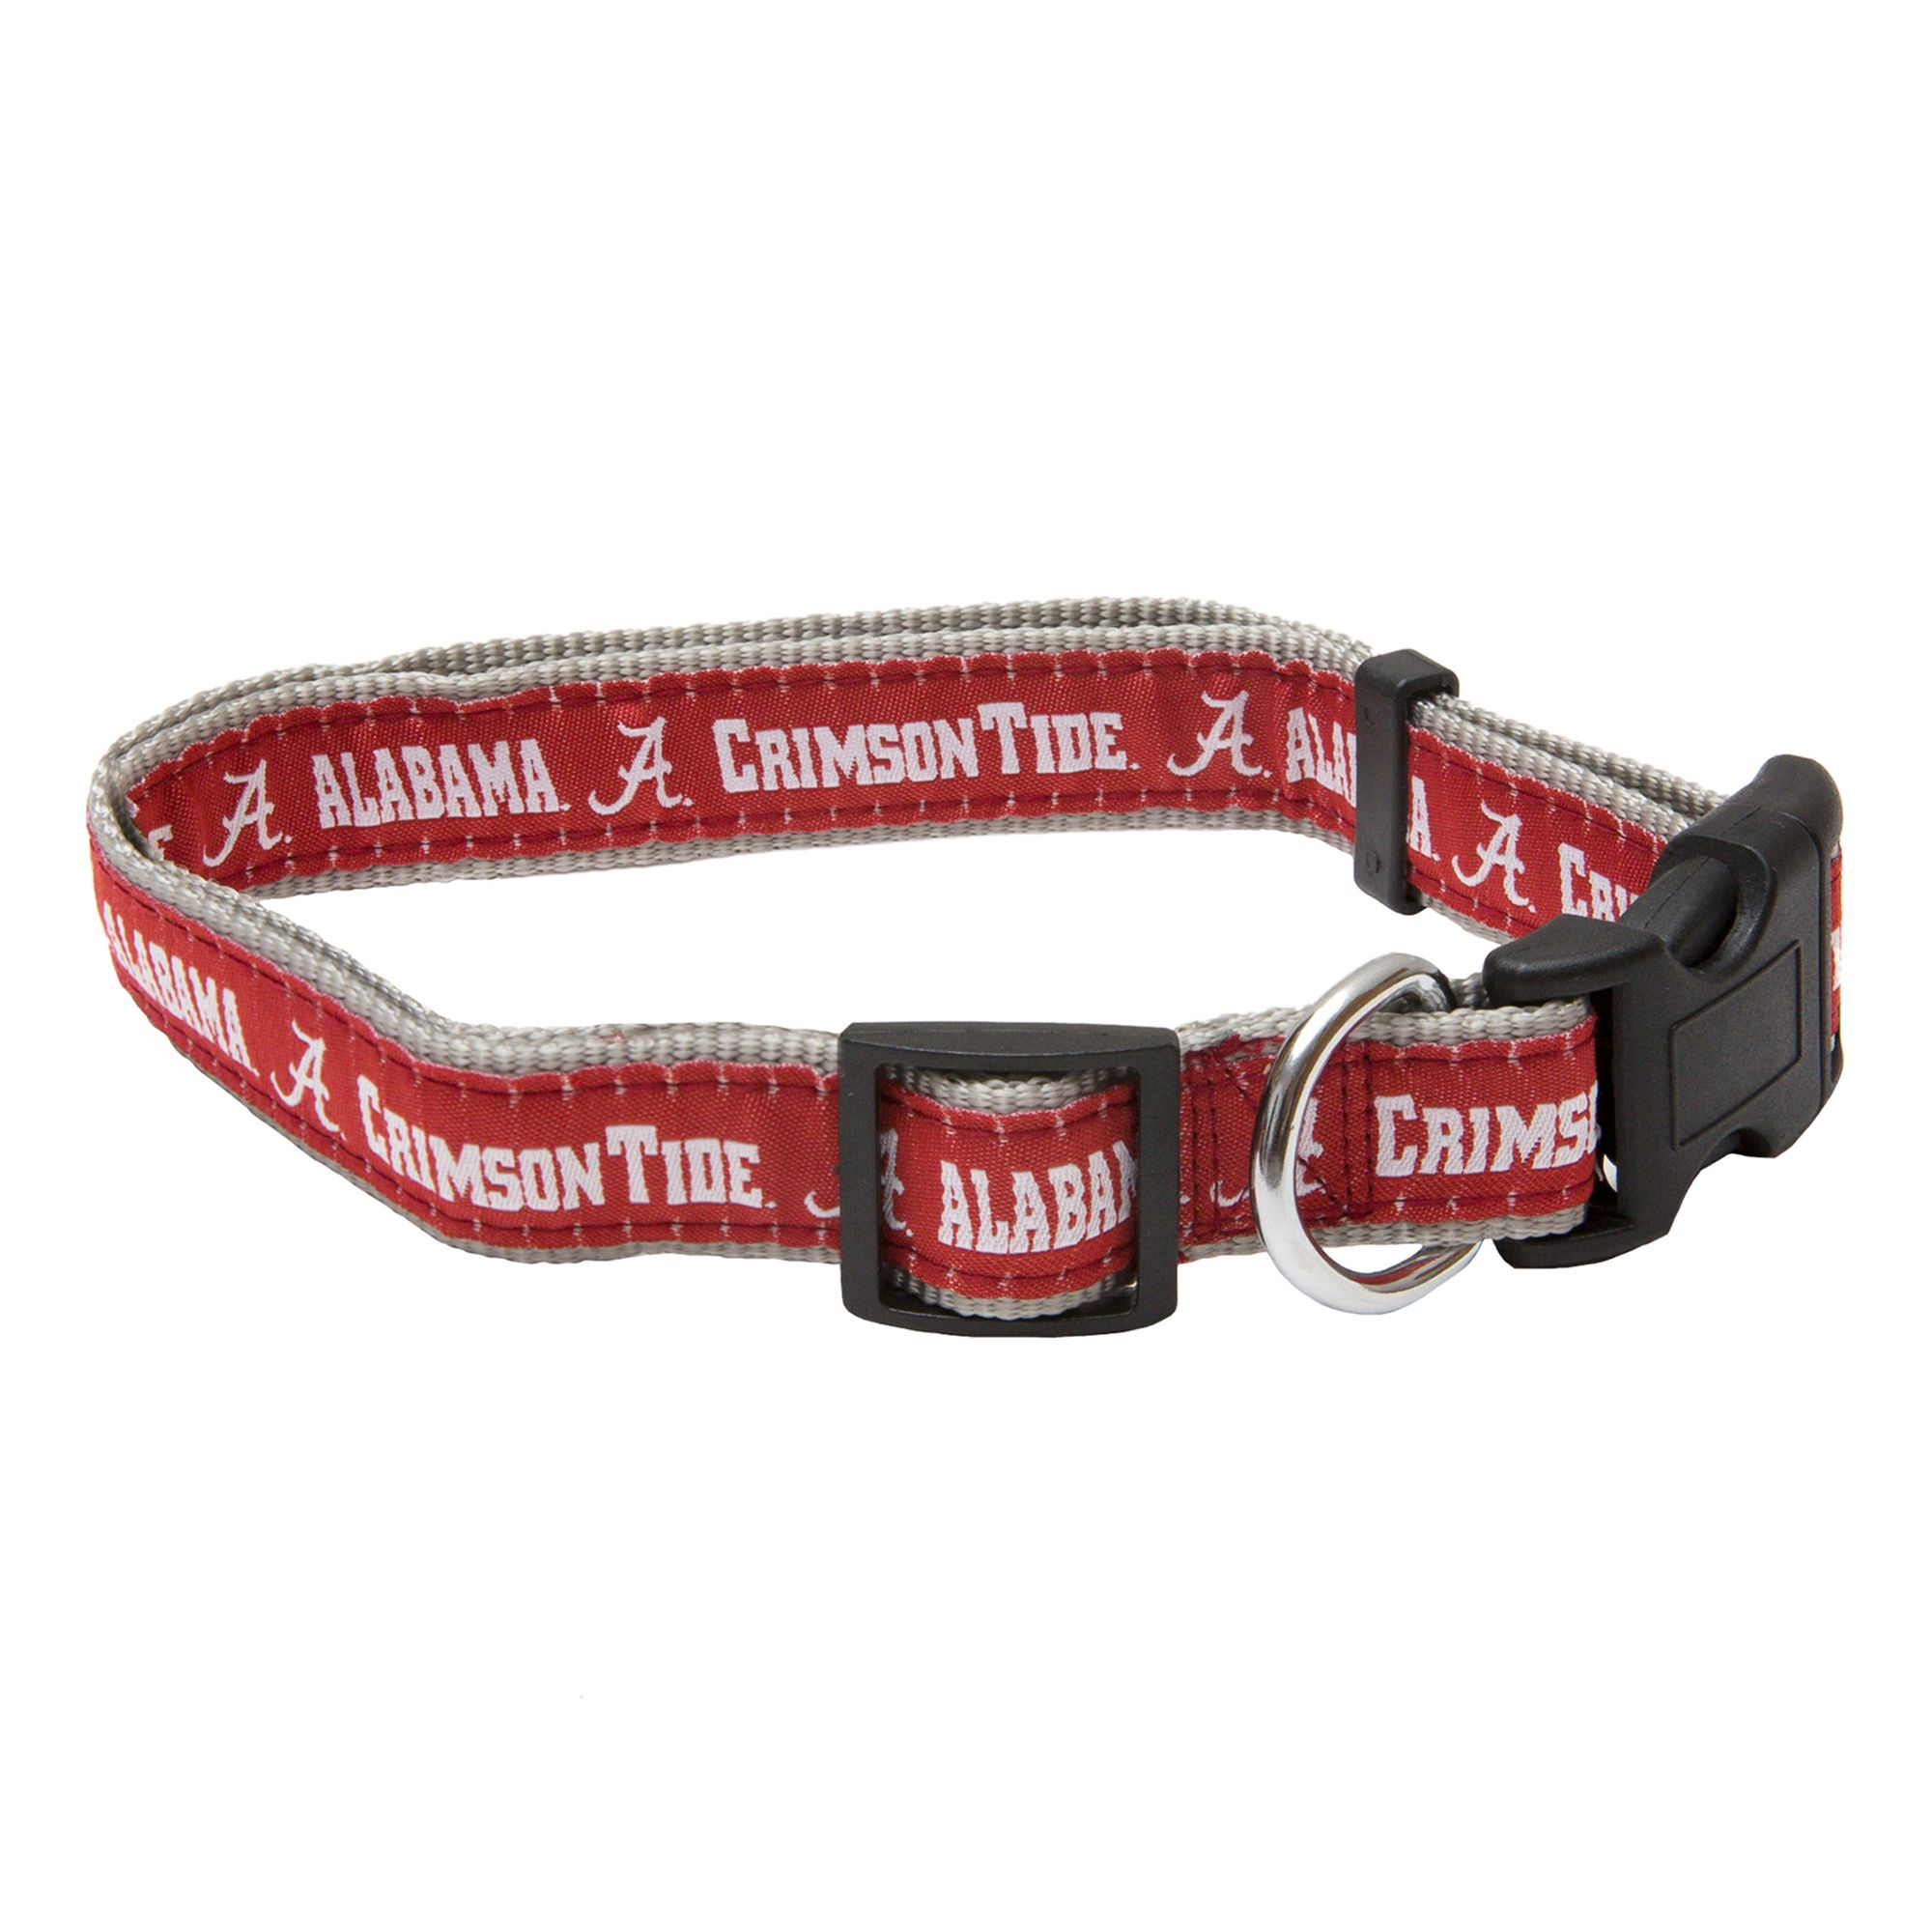 University of Alabama Crimson Tide Collar size: Large, Red 5217835